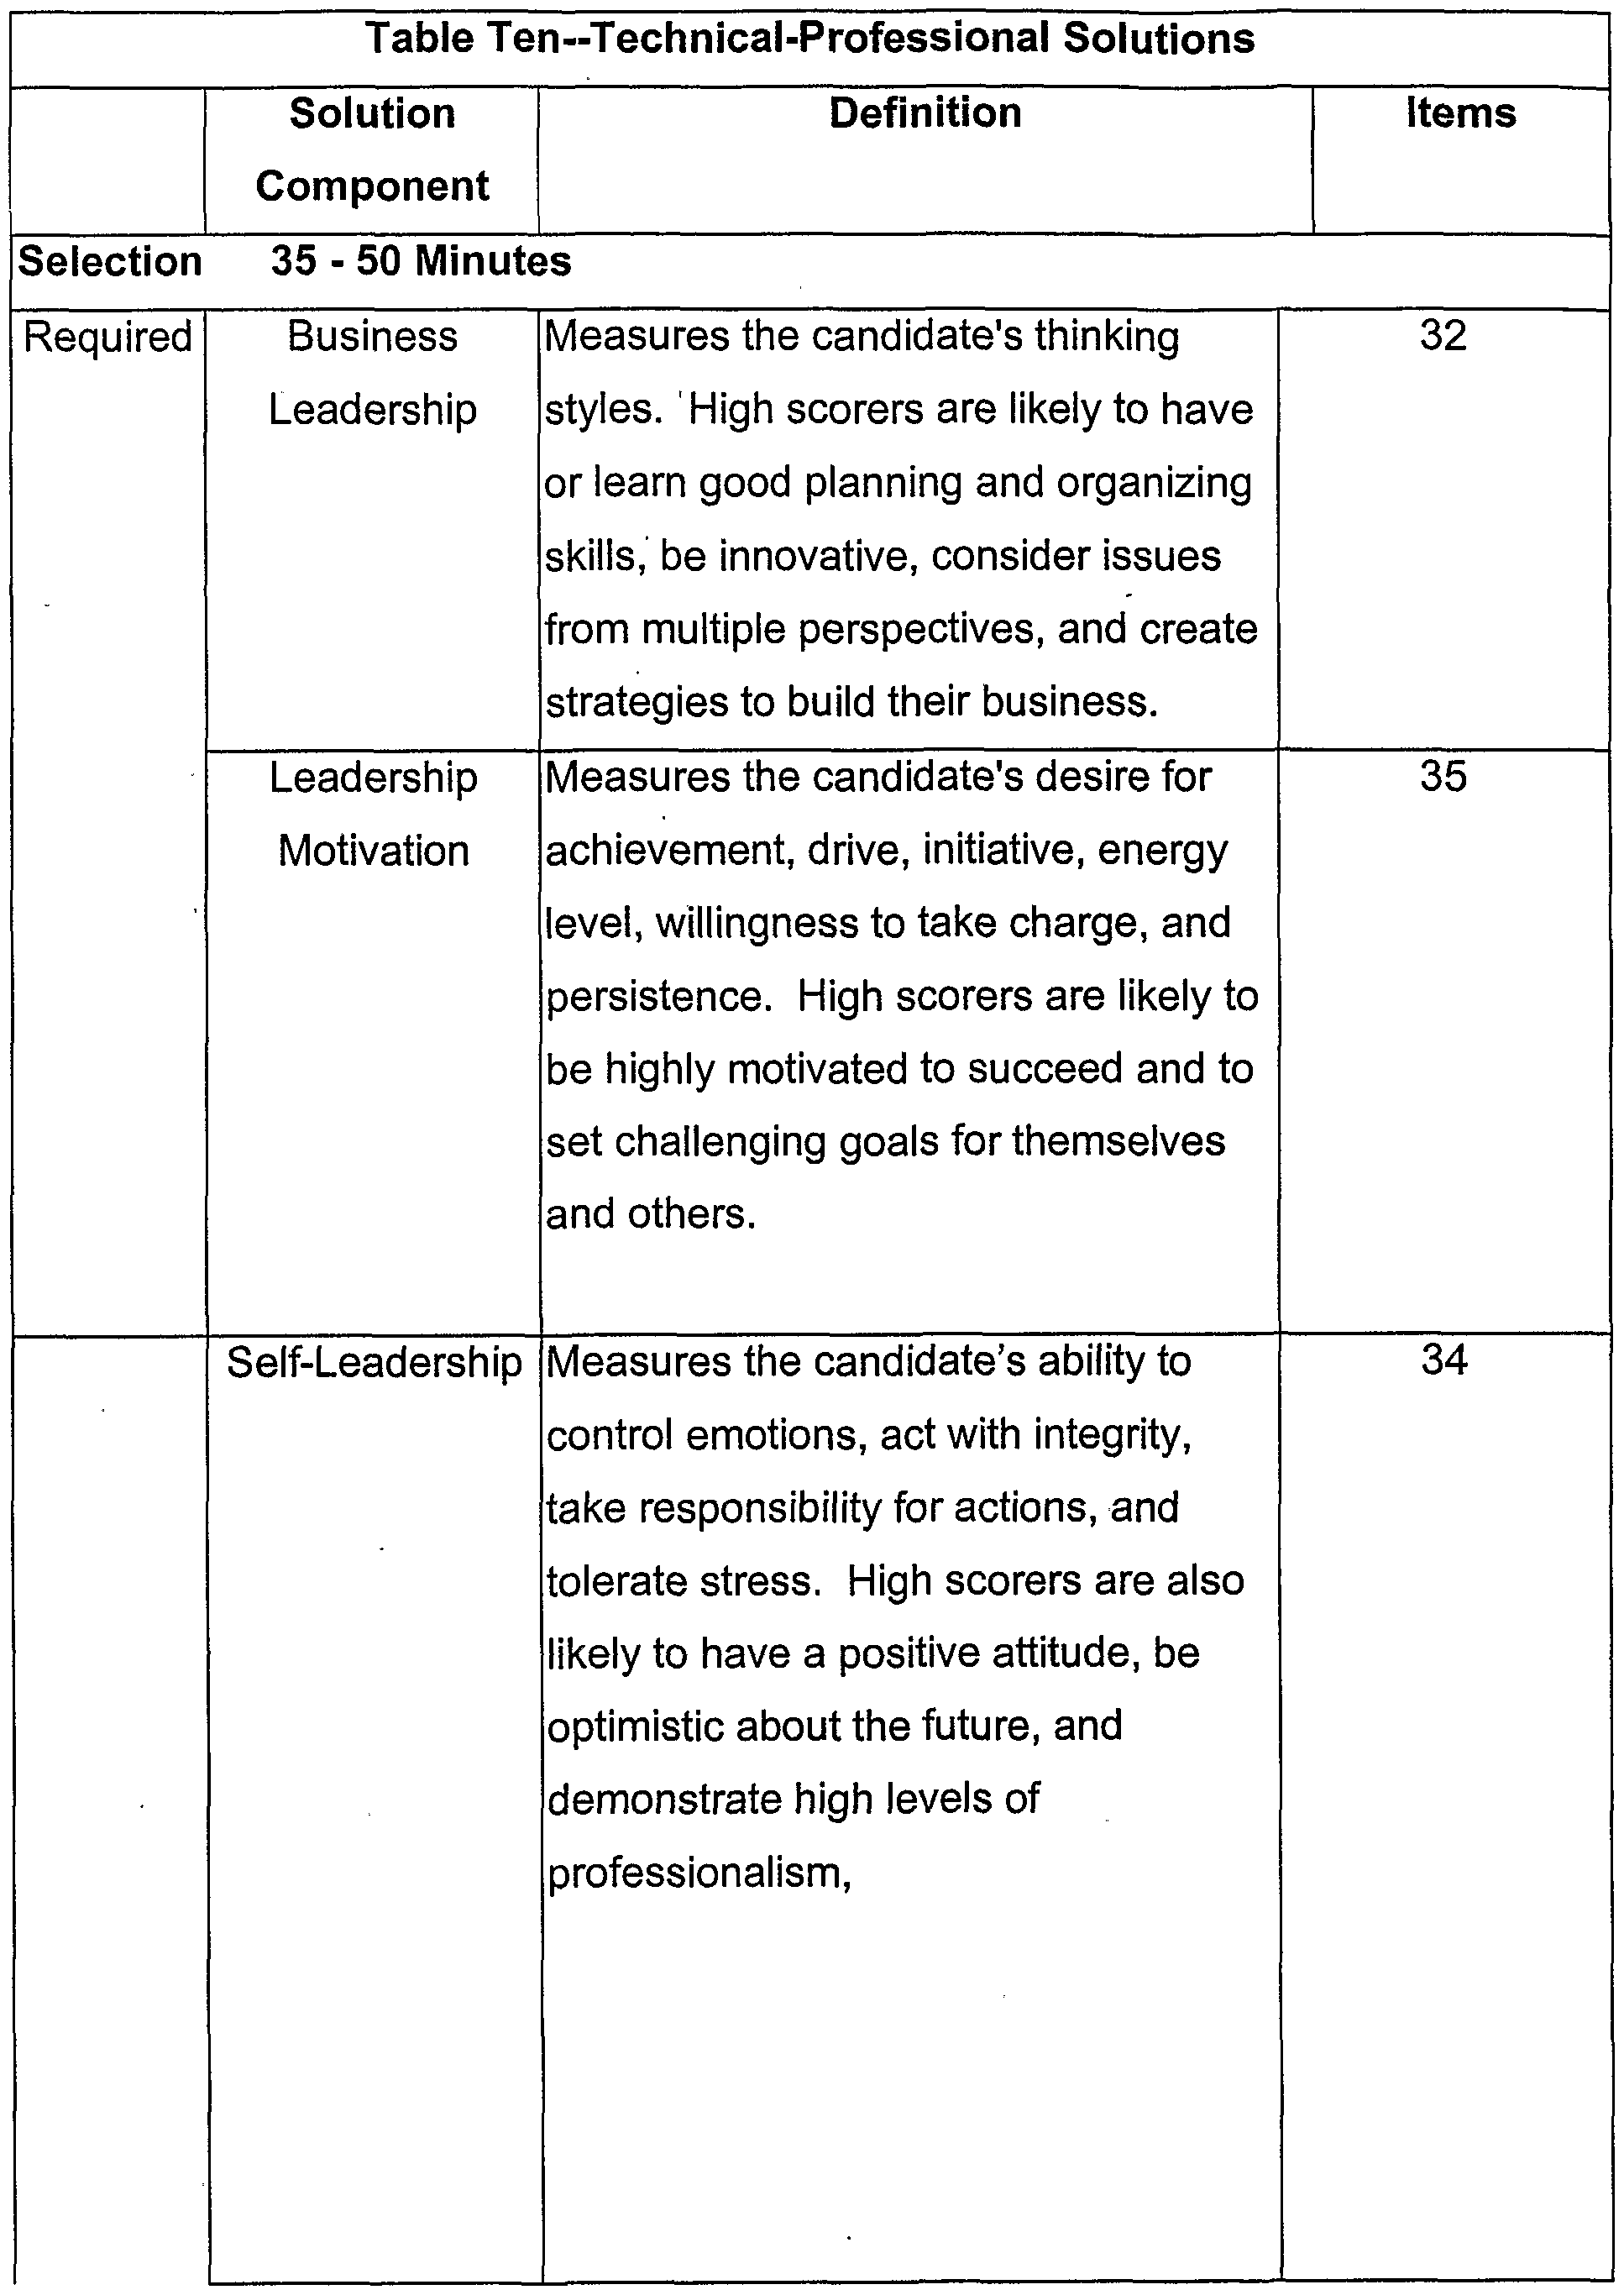 WO2001097083A1 - Computer-implemented system for human